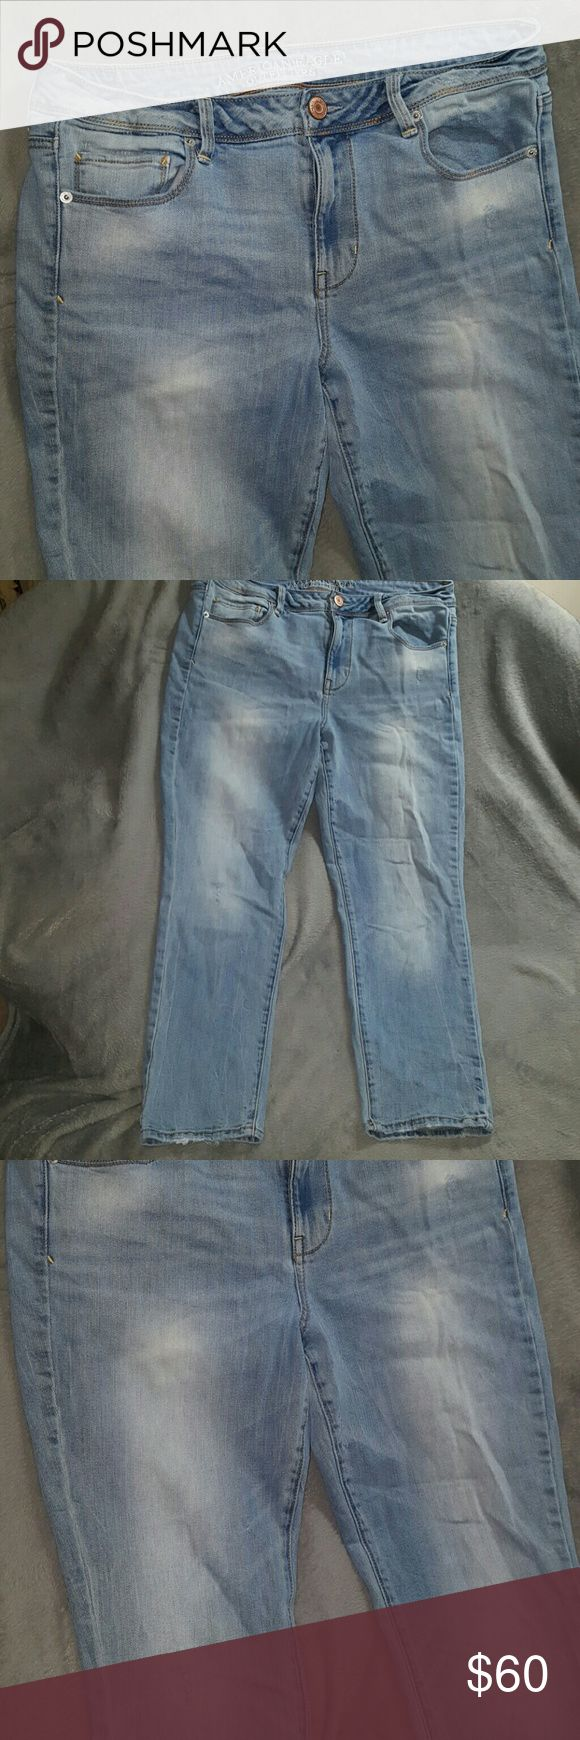 1 HR SALE ~ SUPER SKINNY Jeans NWOT American Eagle SUPER SKINNY Light Wash Jeans ~ New without Tags ~ American Eagle ~ Size 14 short ~ 99% cotton 1% spandex. Slight distress style as purchased. Perfect Skinny Jeans even if you need a regular length, as the hot style is cuffing the bottoms as in the fashion magazines. Number 1 favorite style of American Eagle jeans! I ship daily (#B1 location) American Eagle Outfitters Jeans Skinny